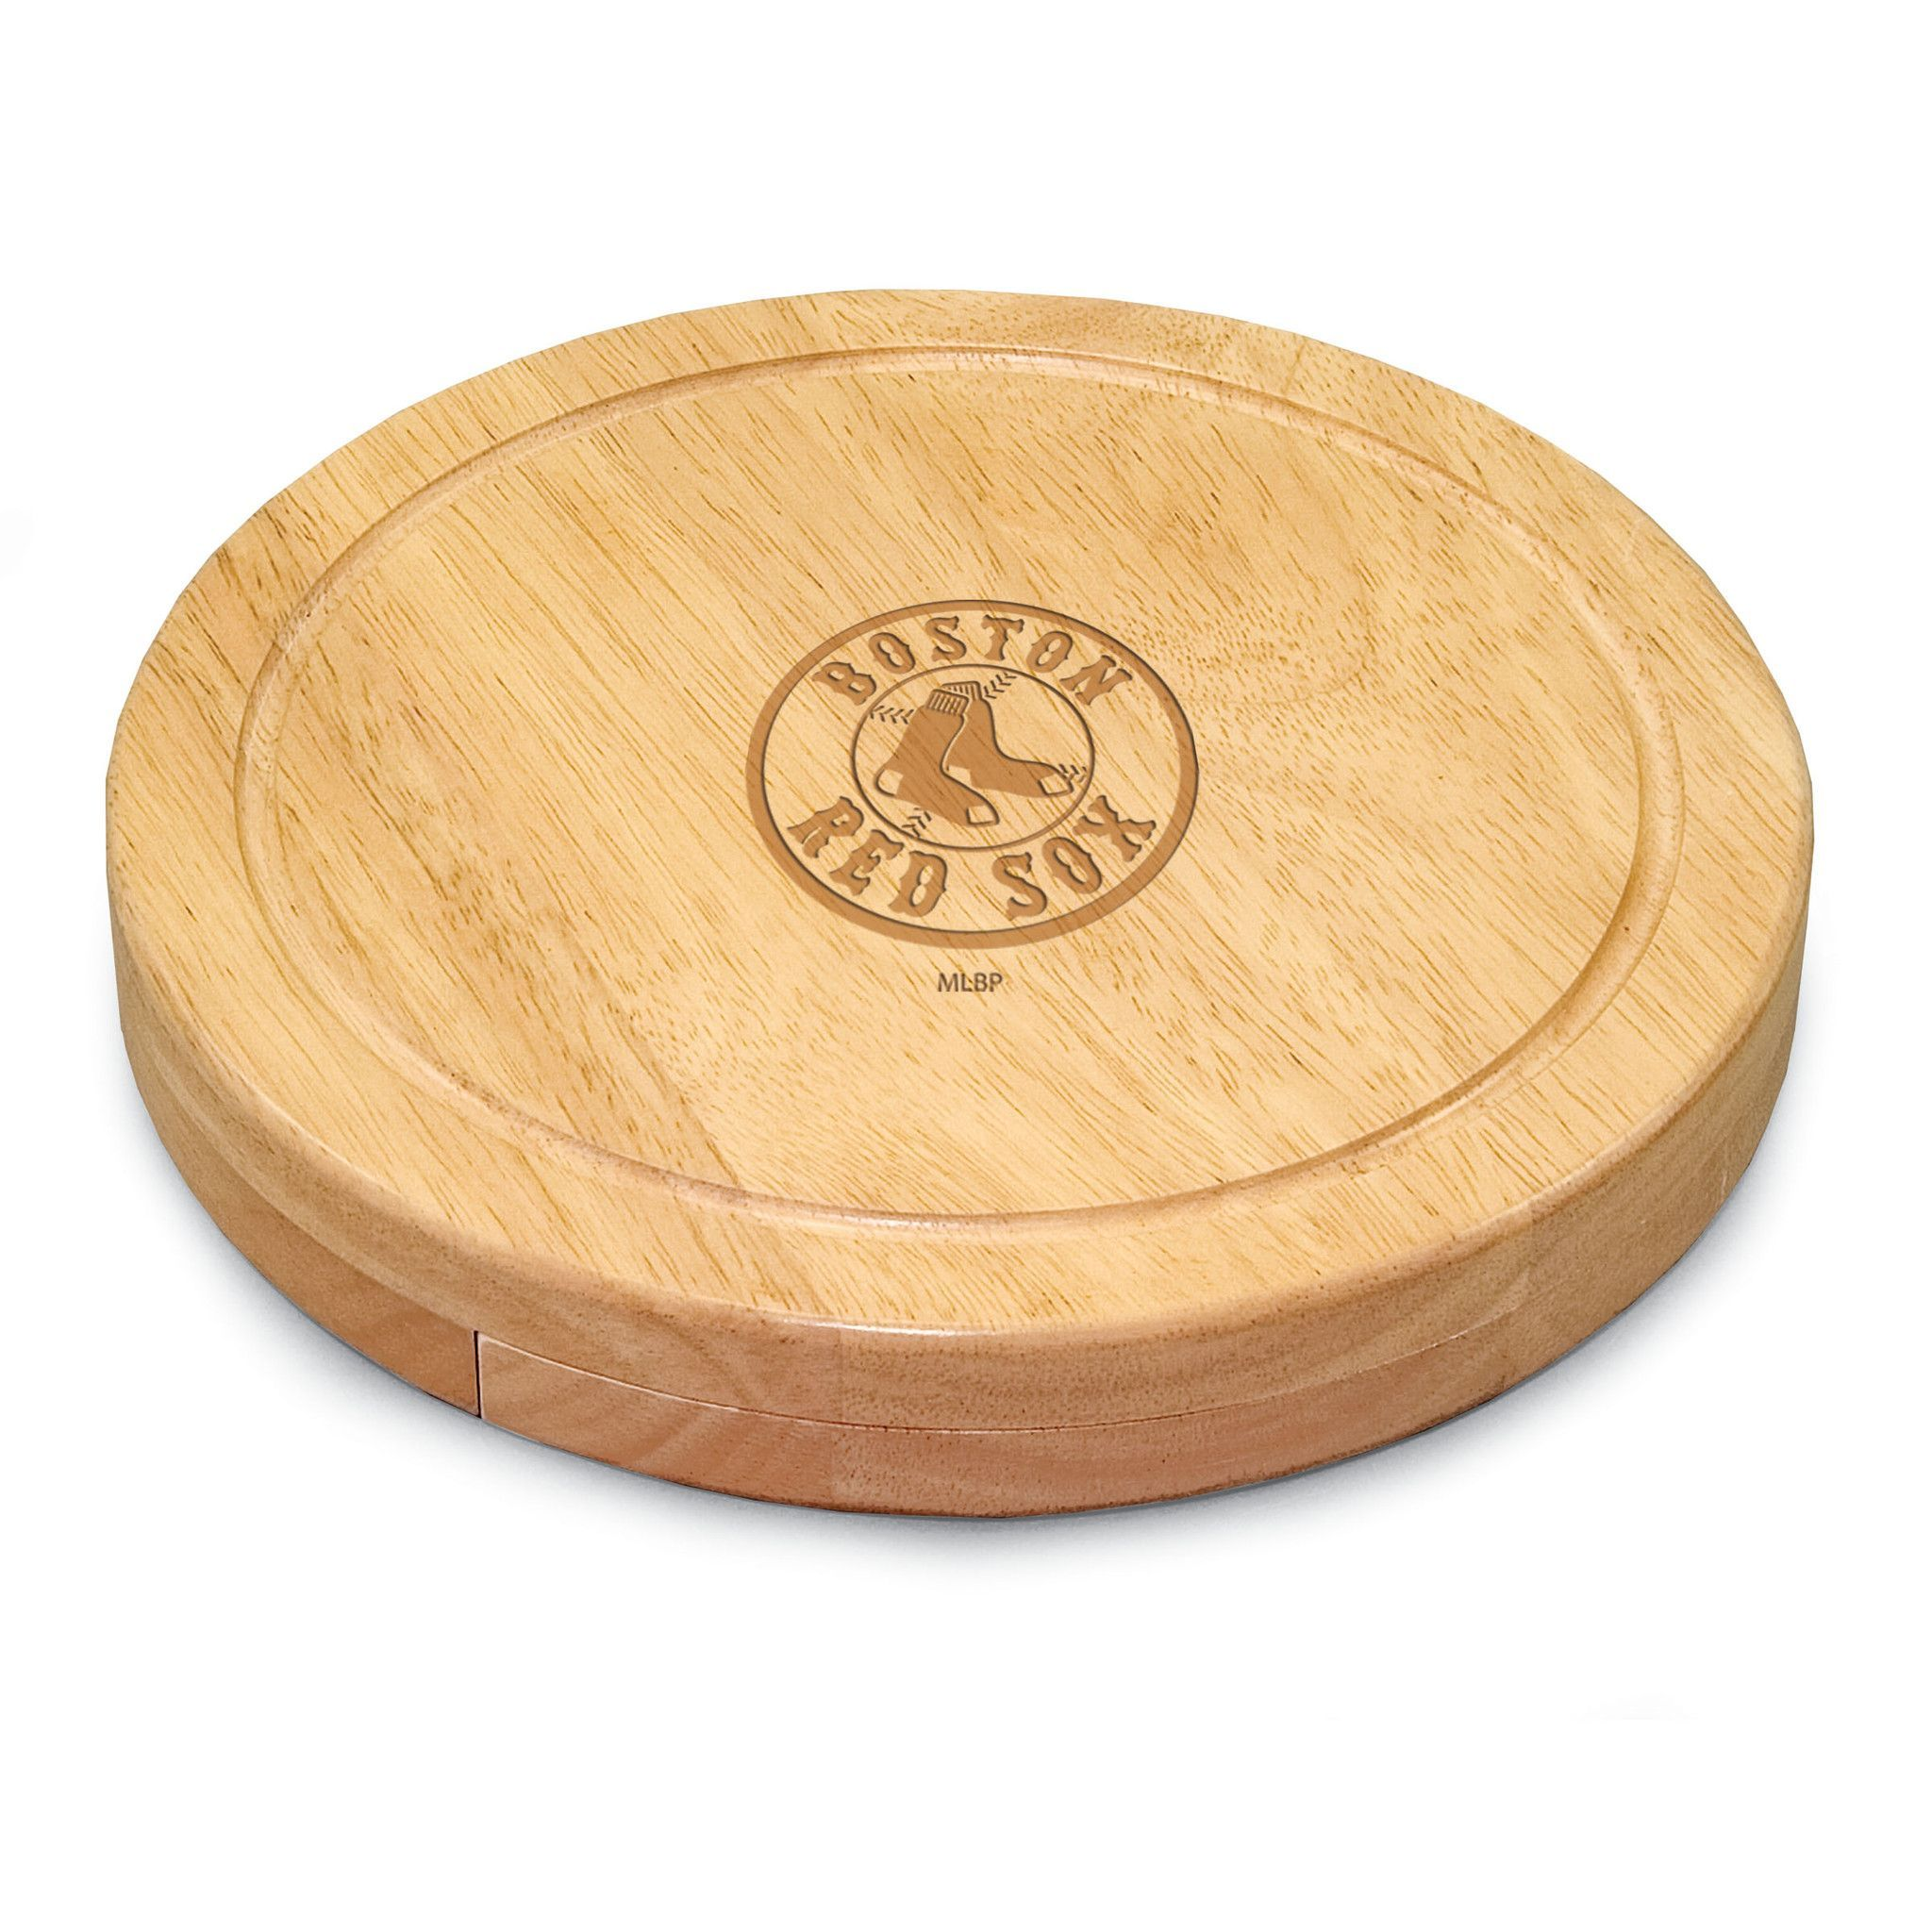 Circo Cheese Board and Tools Set - Boston Red Sox | Wood working ...